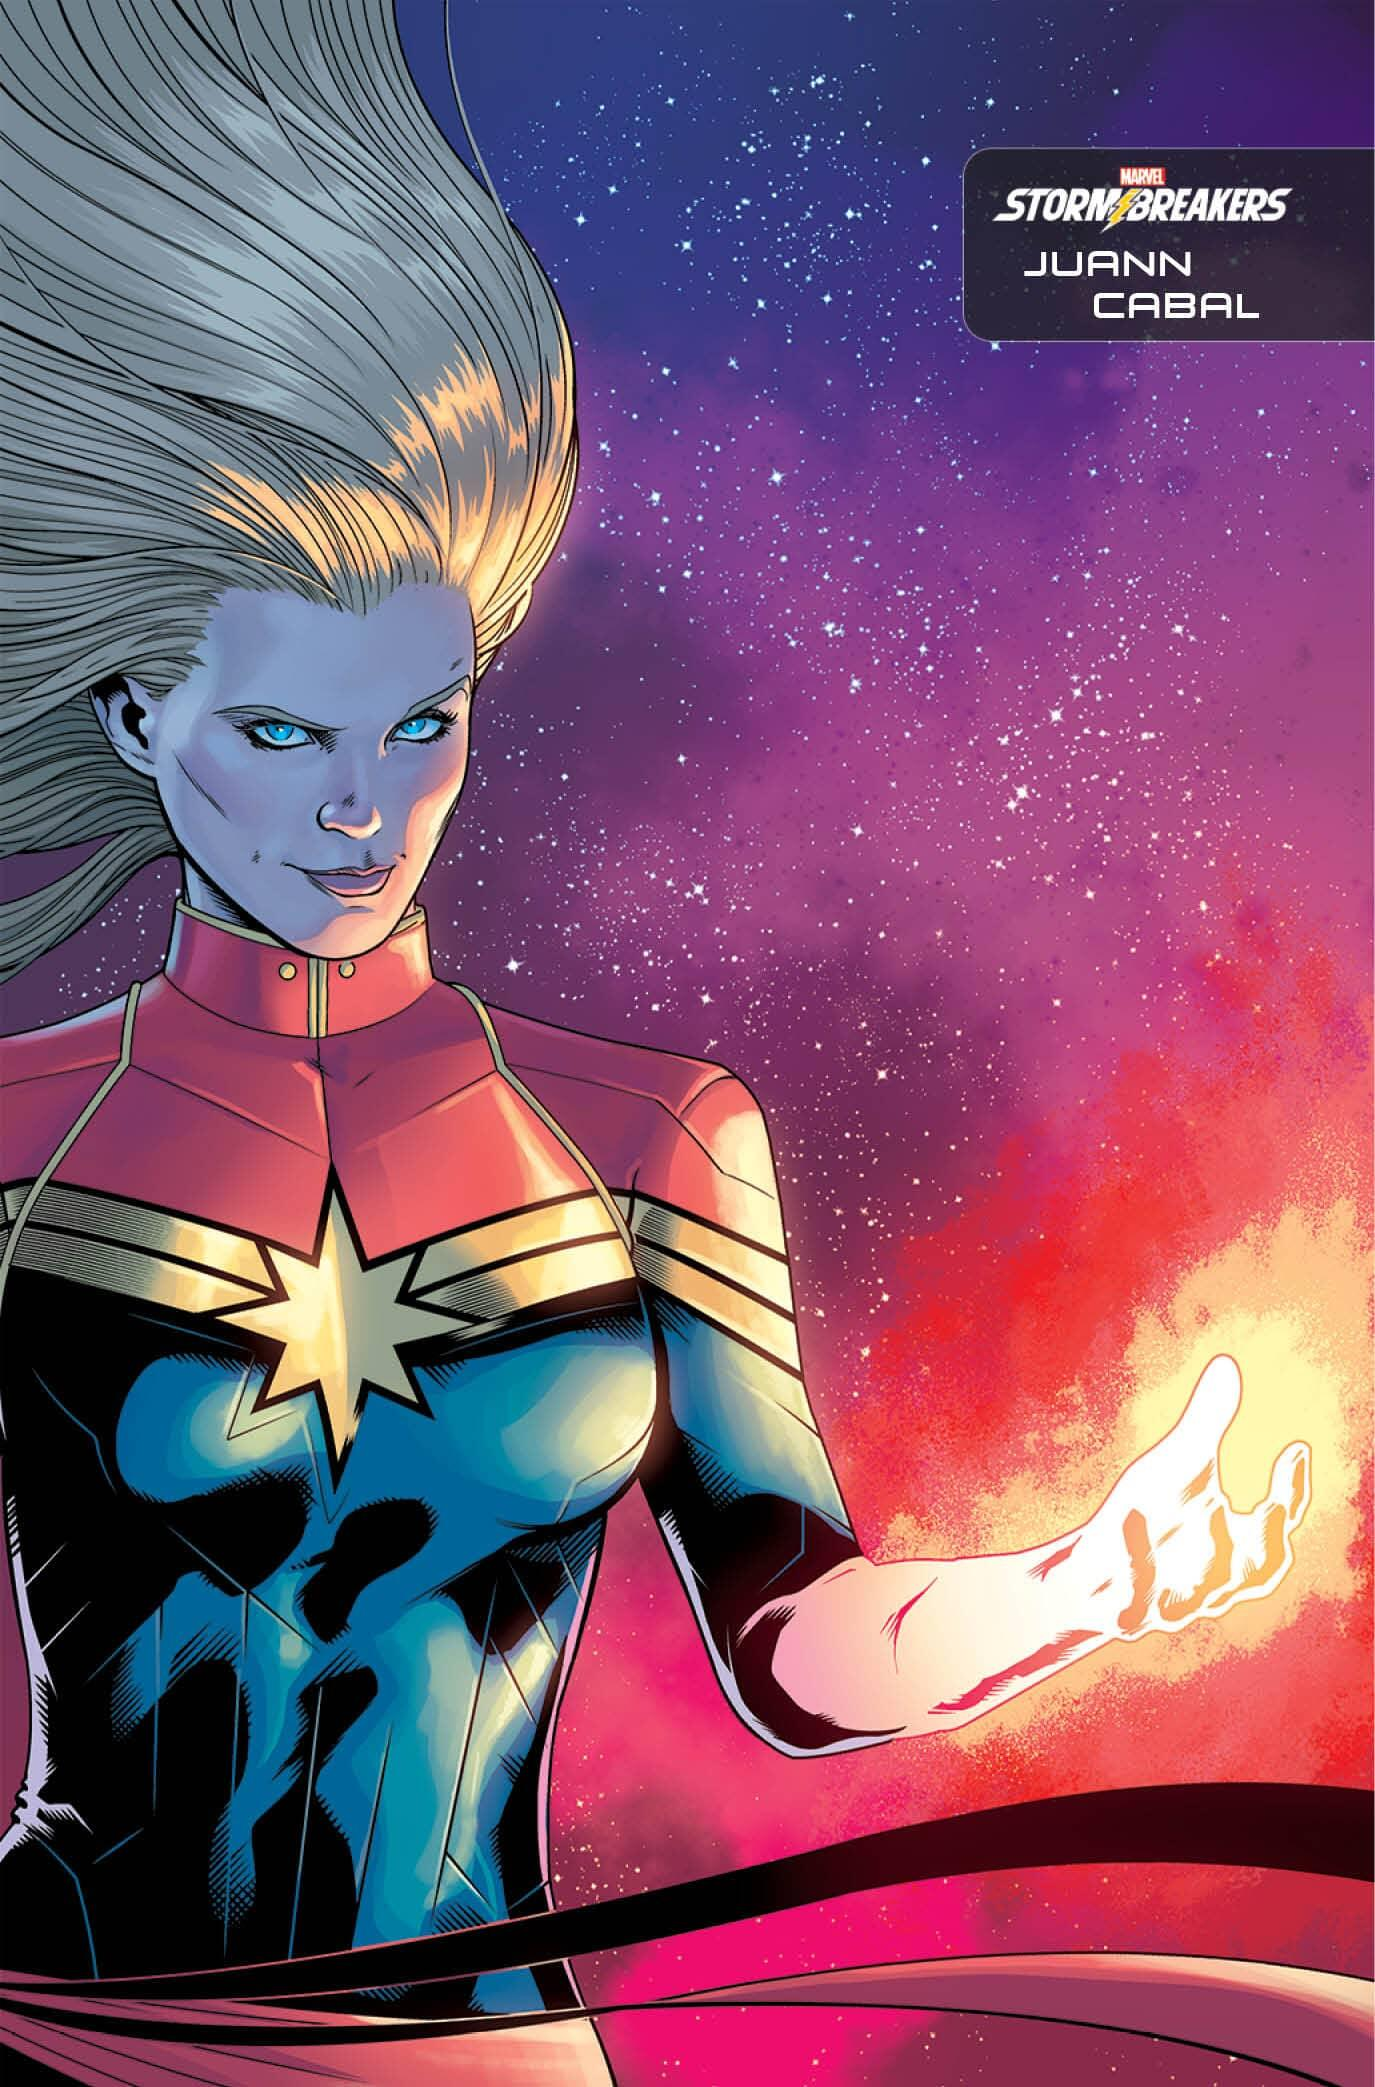 Captain Marvel #25 Stormbreakers variant cover by Juann Cabal